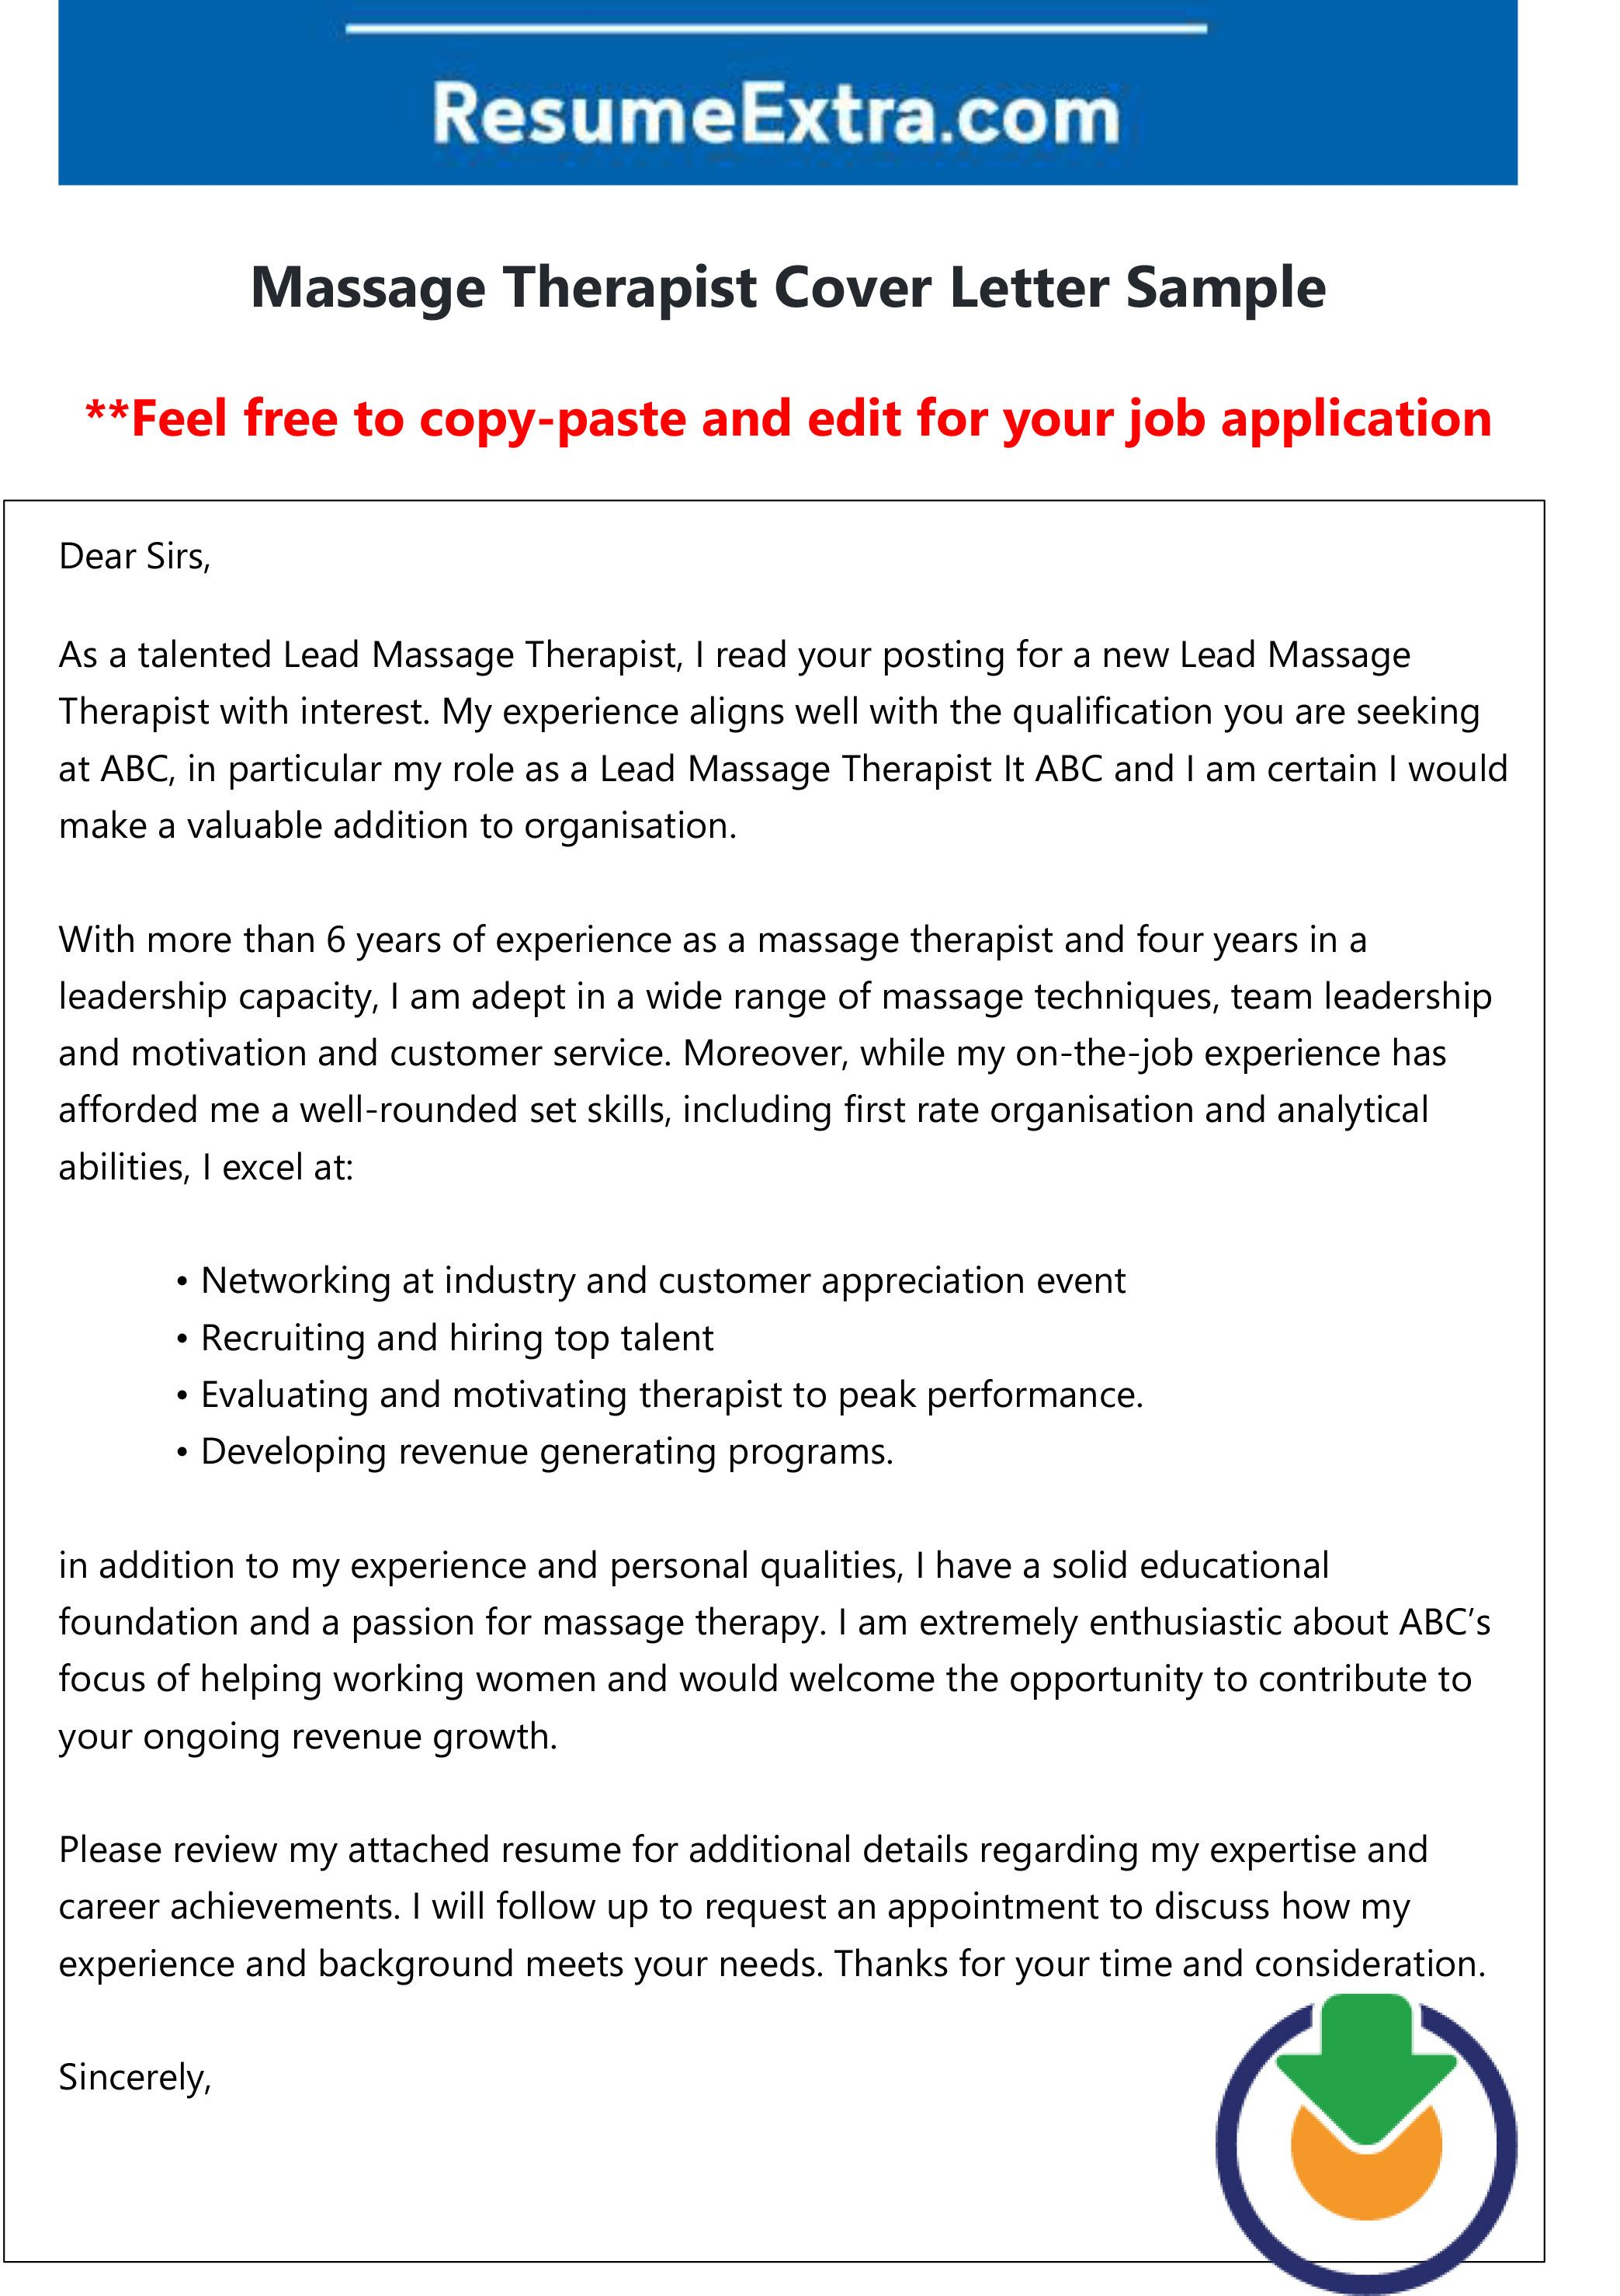 Free Massage Therapist Cover Letter Cover Letter Sample Massage Therapist Jobs Lettering